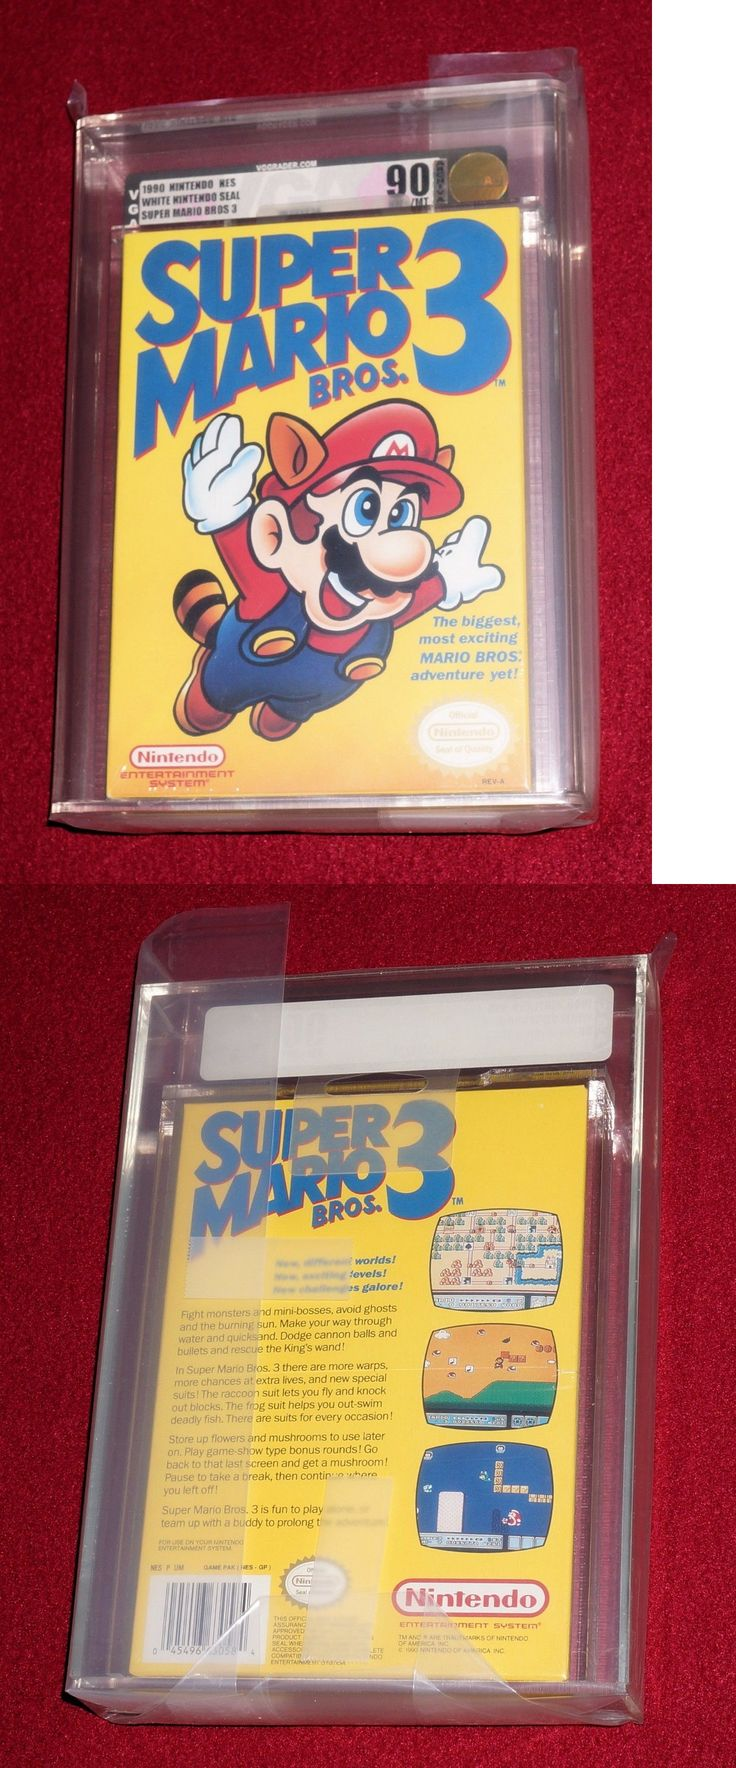 Video Gaming: Super Mario Bros. 3, New Sealed! Nintendo Nes Vga 90! -> BUY IT NOW ONLY: $1999.99 on eBay!